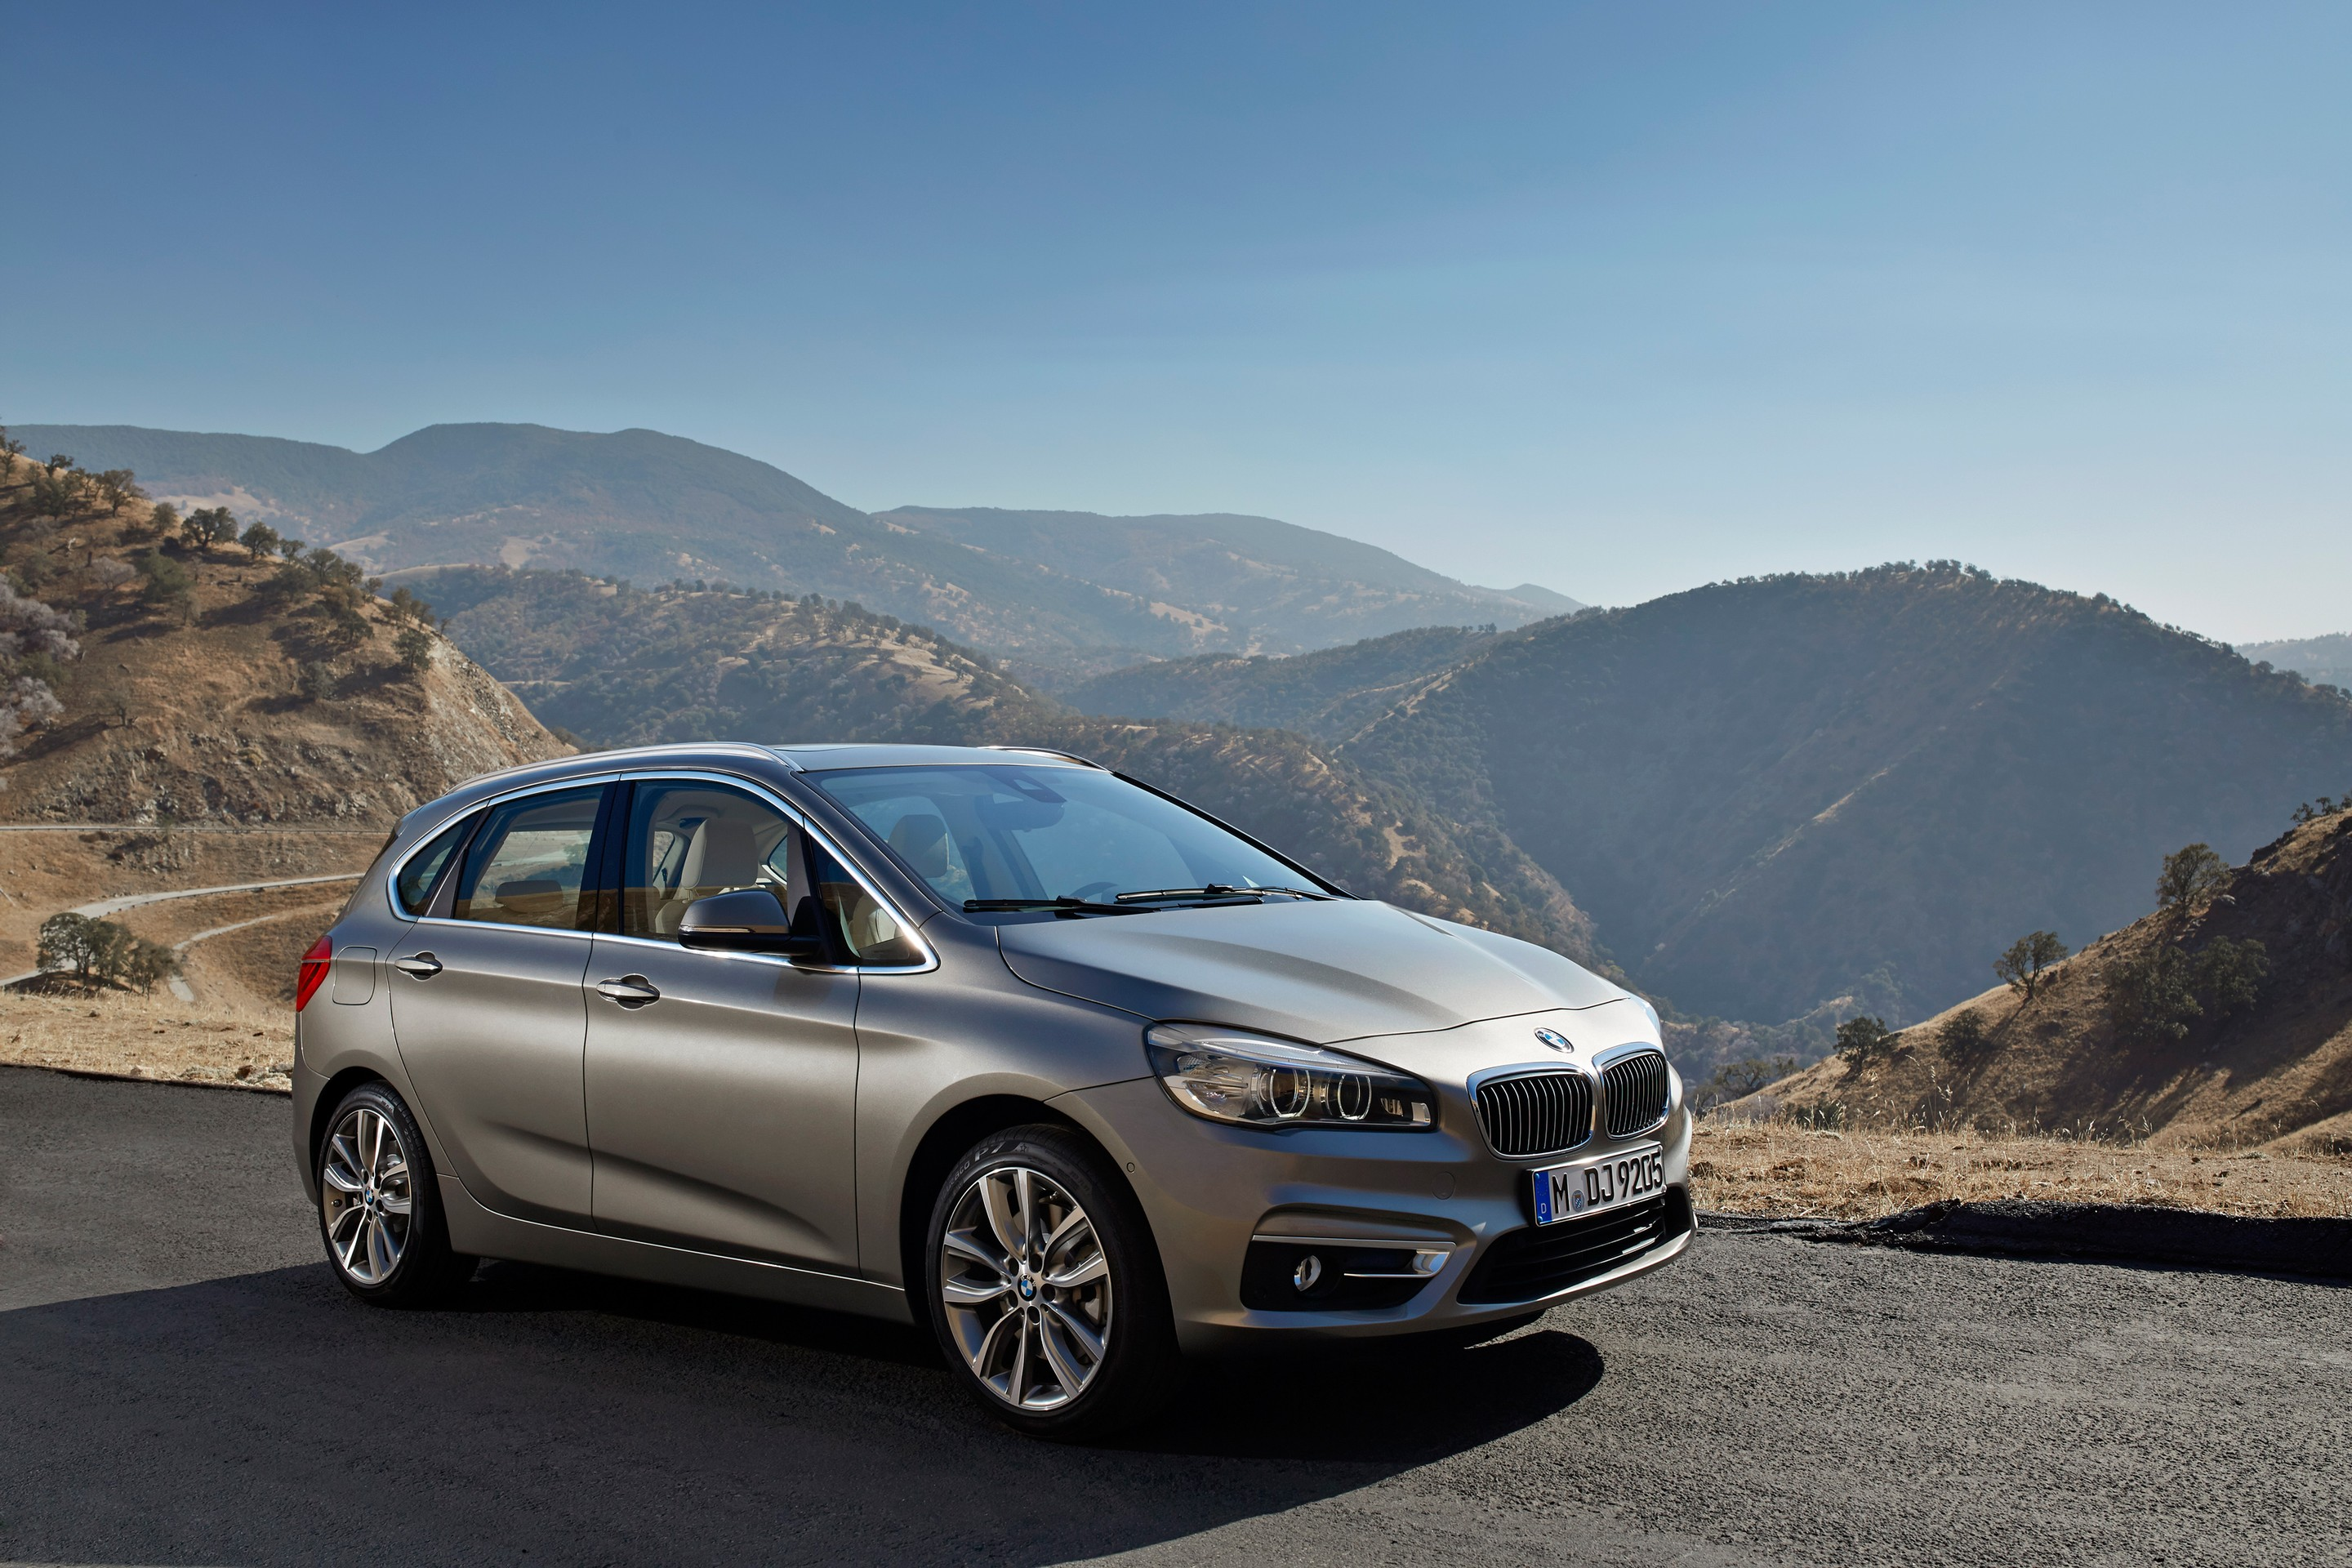 Фото BMW 2-Series Active Tourer 2015.